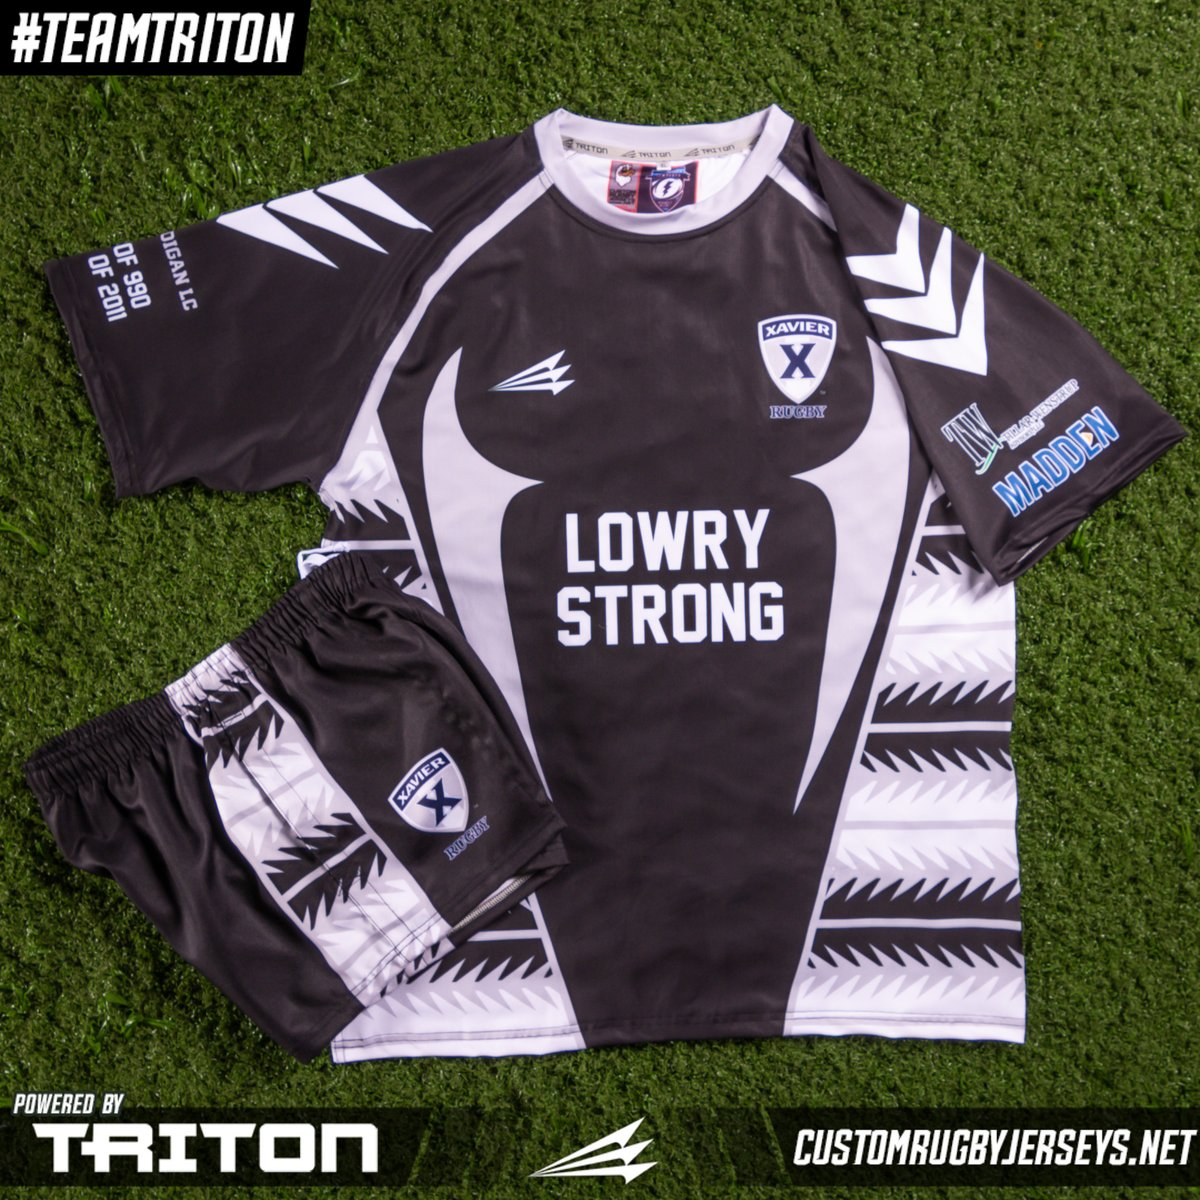 This jersey and shorts combo is just one way to build your custom uniforms from #Triton with comfort and style. Check out our packages or request a custom quote.    #teamtriton #custom #authentic #original #rugby #jerseys #rugbyjerseys #rugbyswag #swag